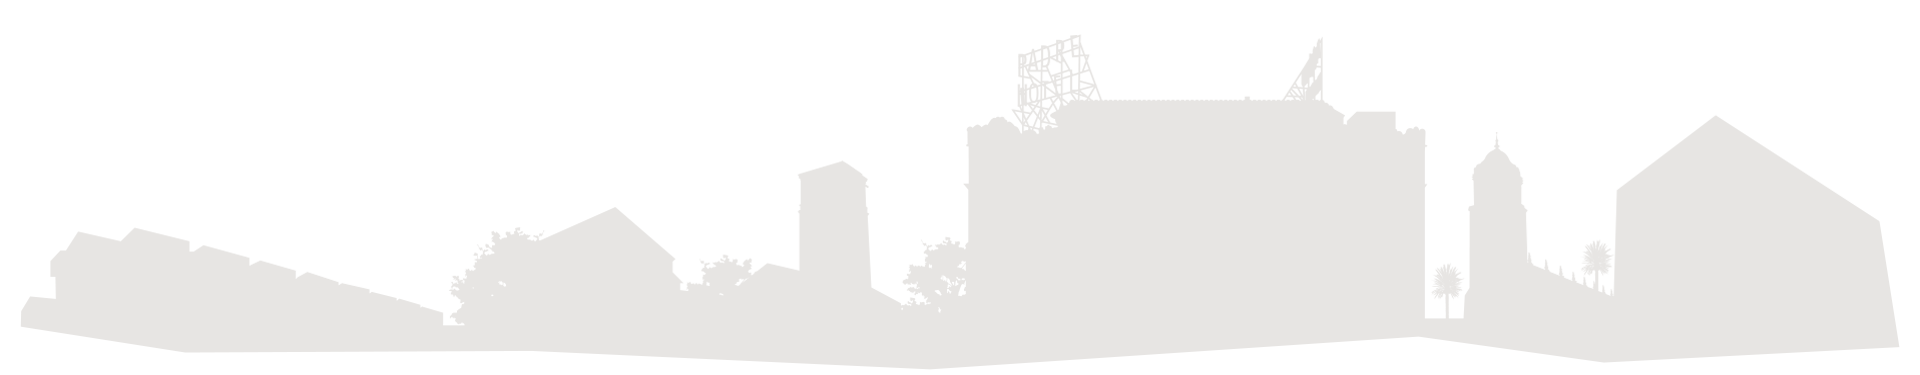 cityscape_new.png